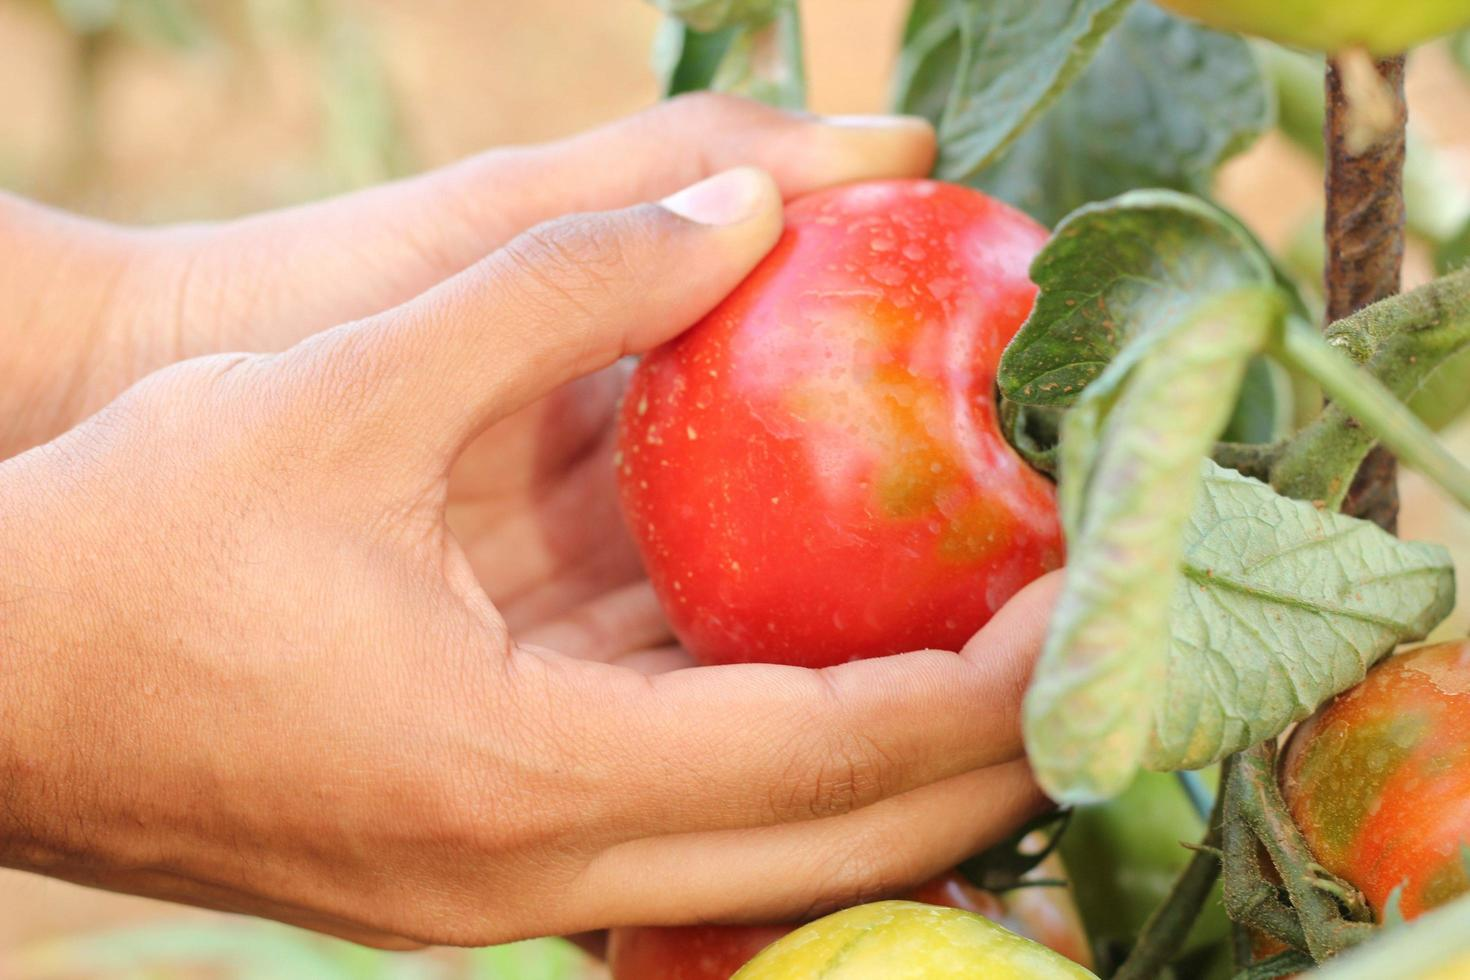 Hands holding tomatoes photo